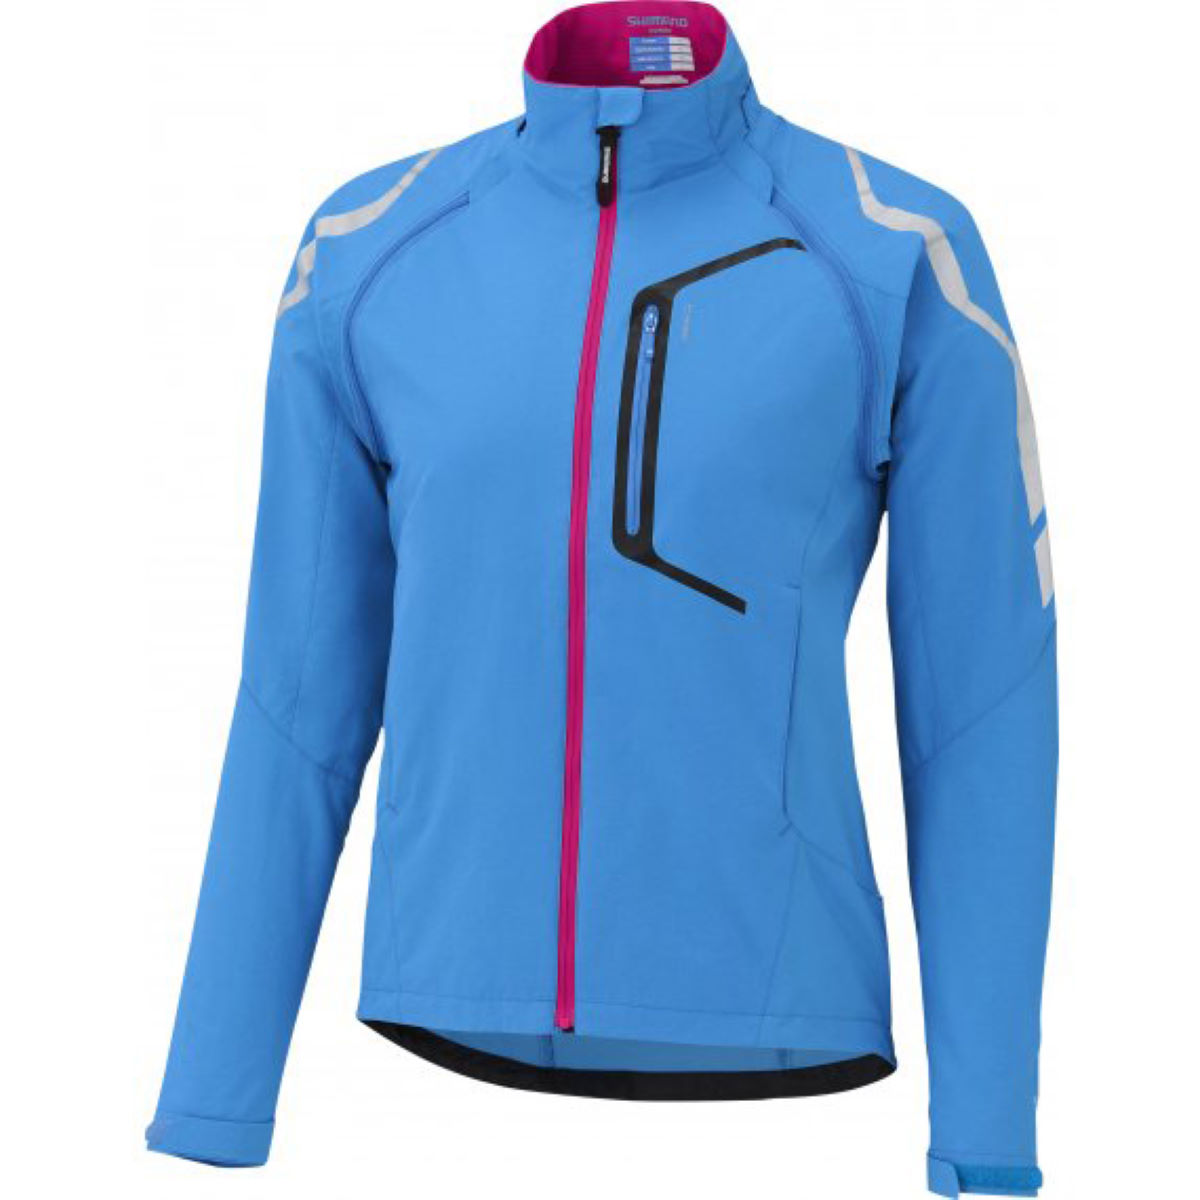 Veste Femme Shimano Hybrid - M Lightening Blue Coupe-vents vélo